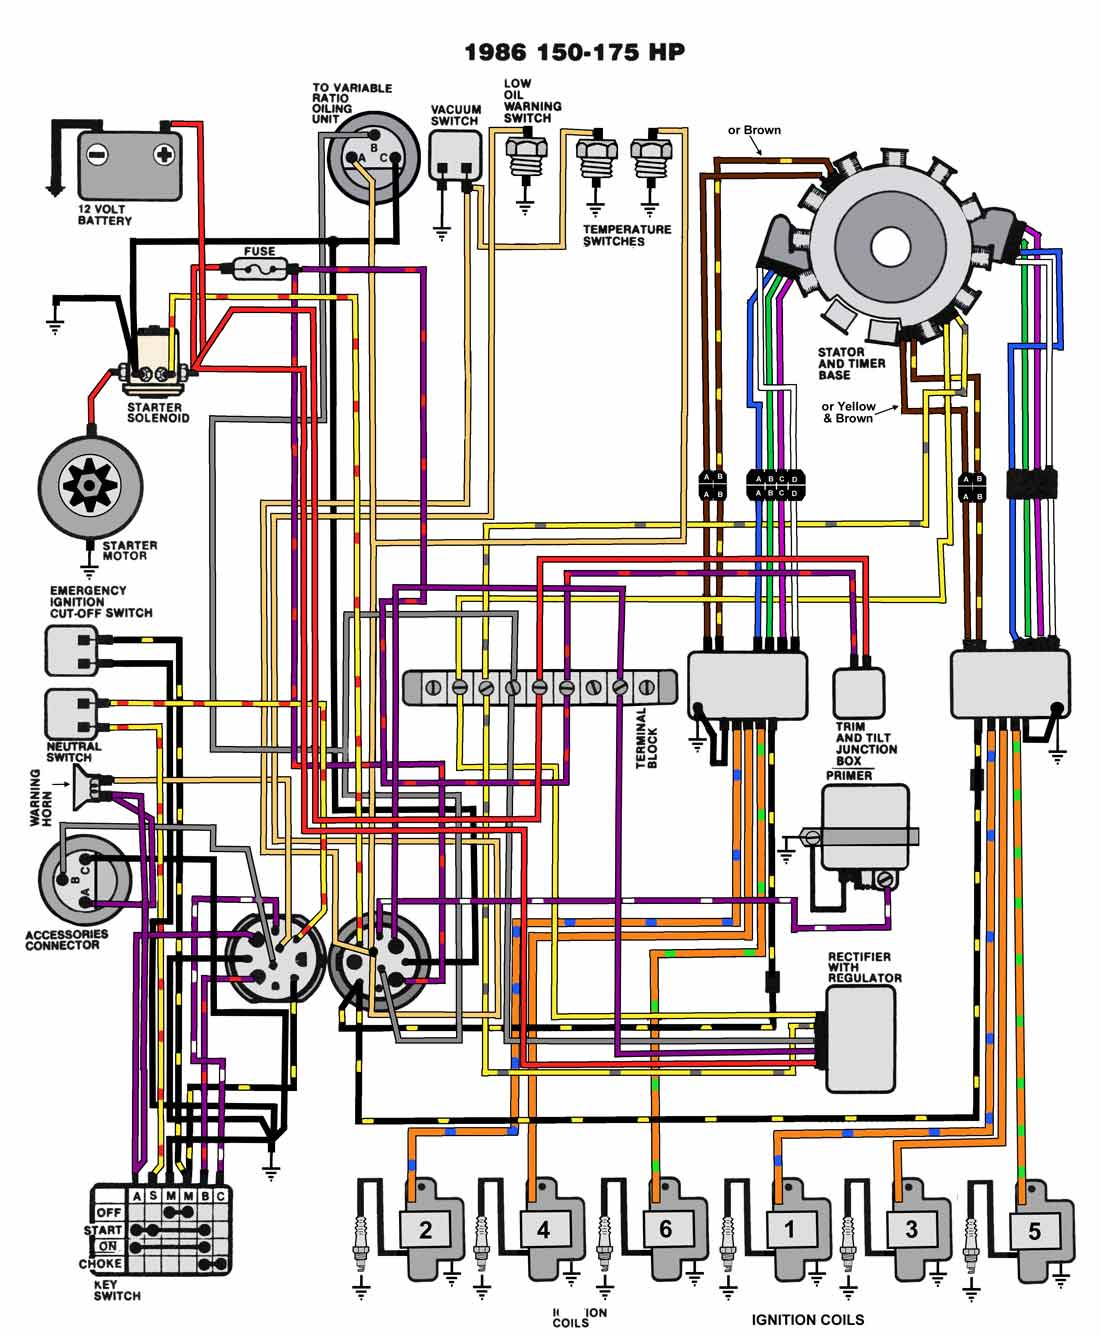 evinrude wiring harness diagram evinrude image yamaha outboard main harness wiring diagram the wiring diagram on evinrude wiring harness diagram